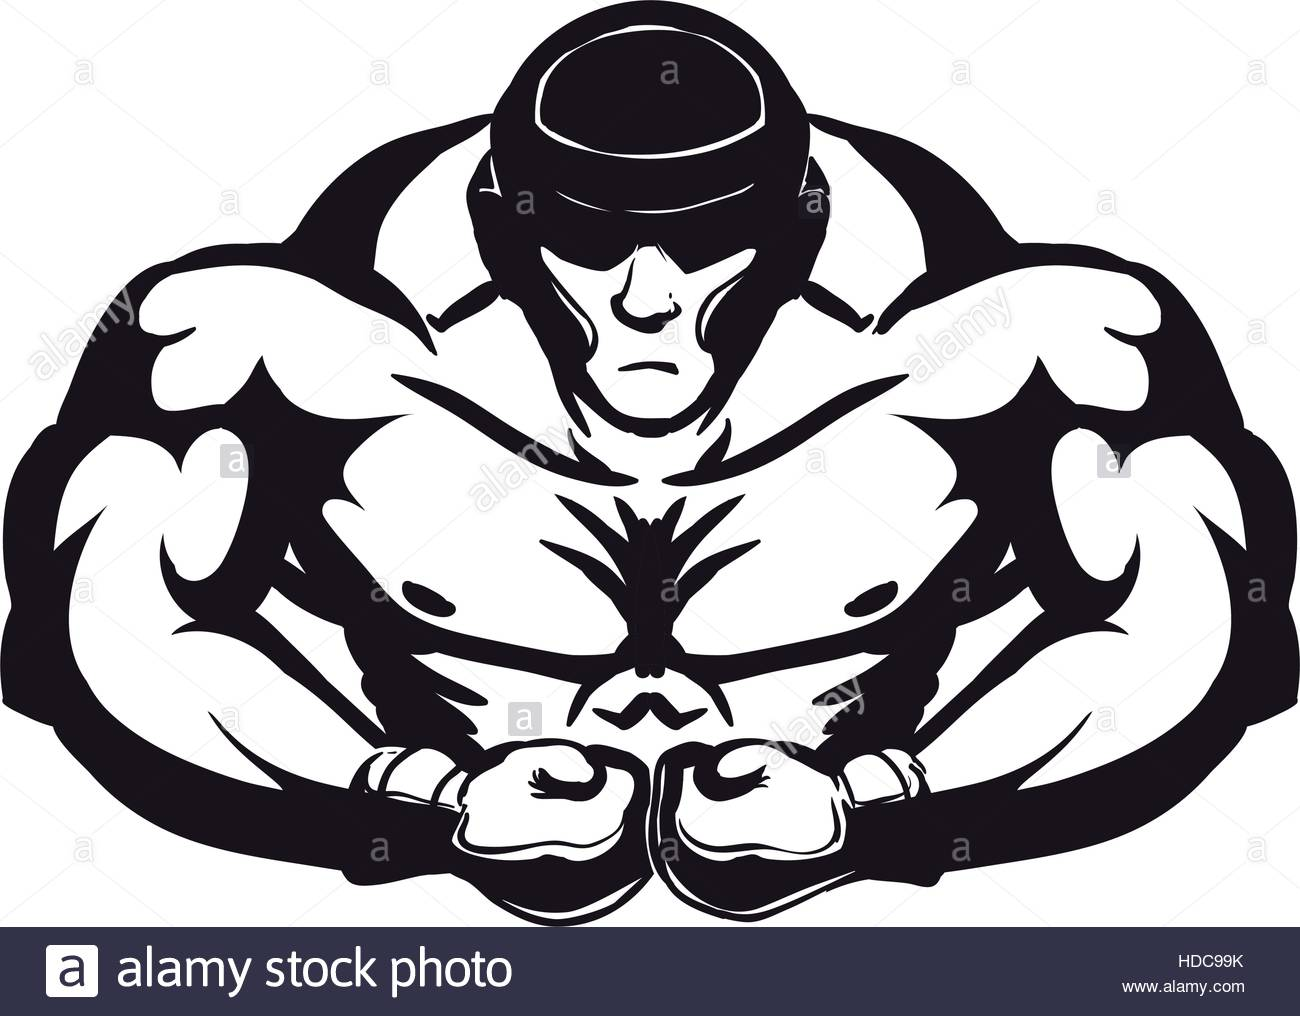 1300x1016 Silhouette Of Muscular Man With Boxing Gloves Icon Over White